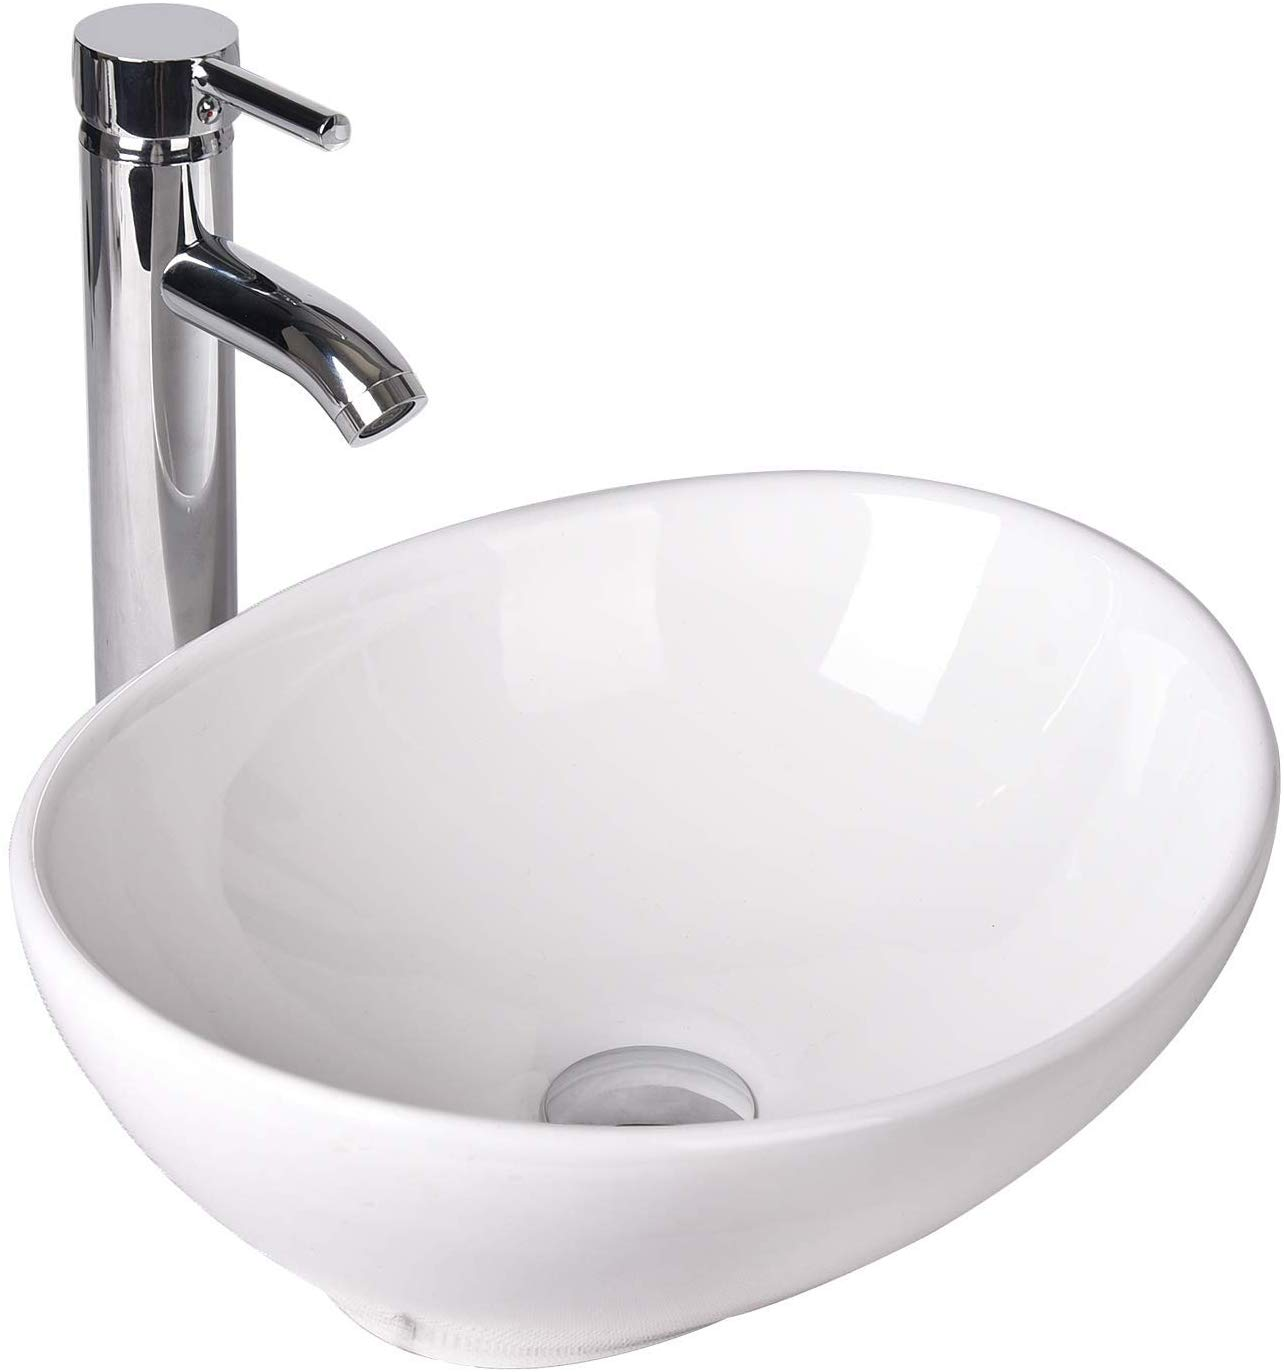 elecwish oval ceramics vessel sink and faucet combo white countertop basin bathroom vanity utility sink